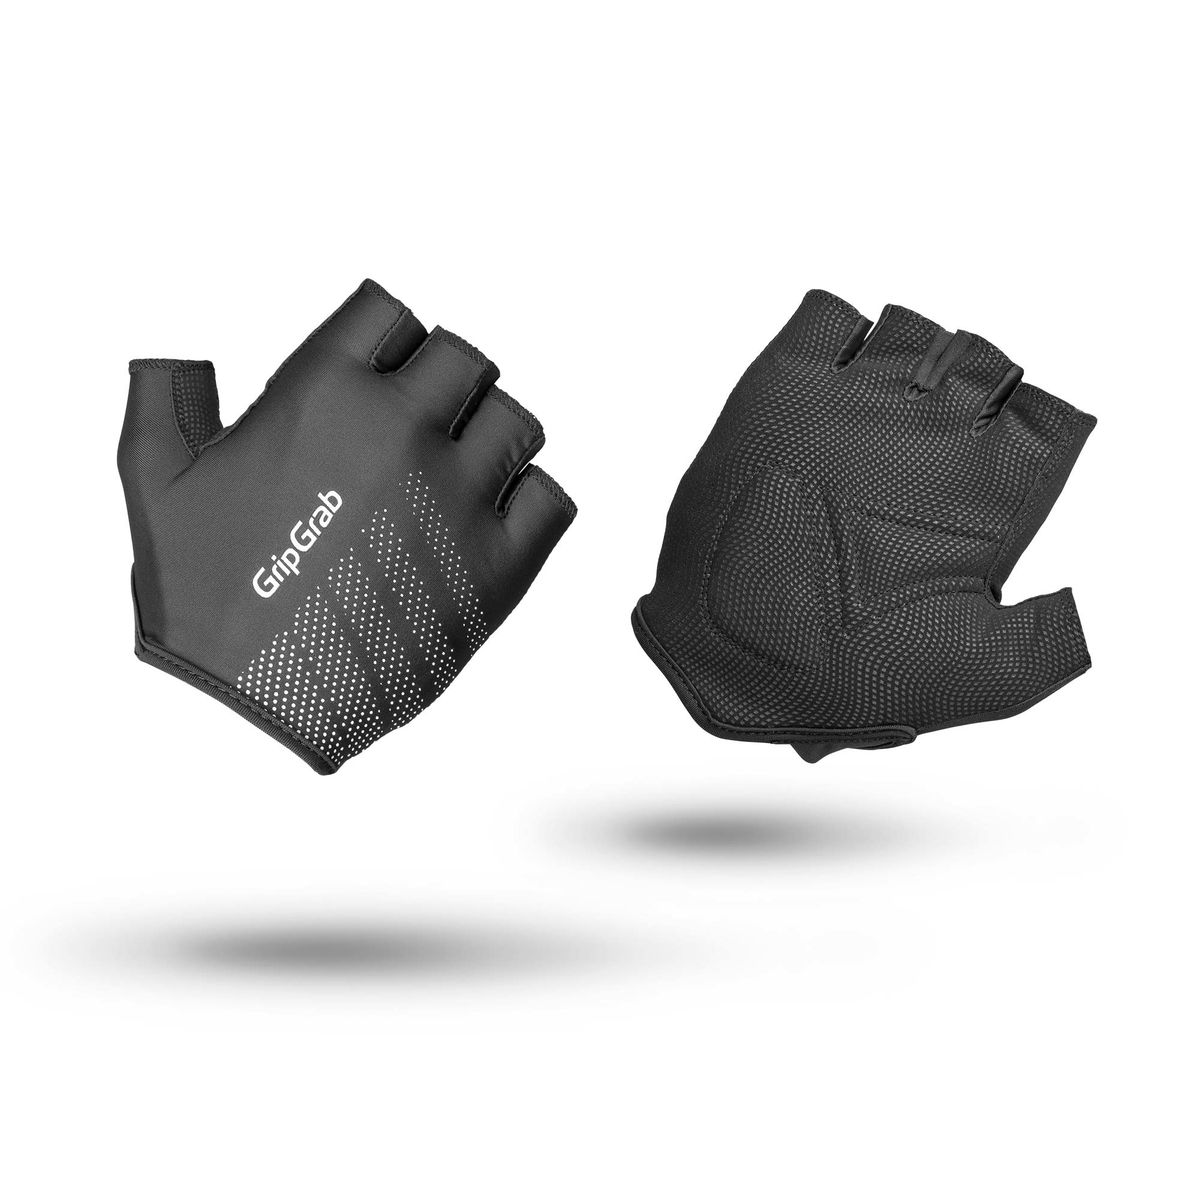 GripGrab Ride Windproof Winter Glove - Black - XXL, Black | bike glove